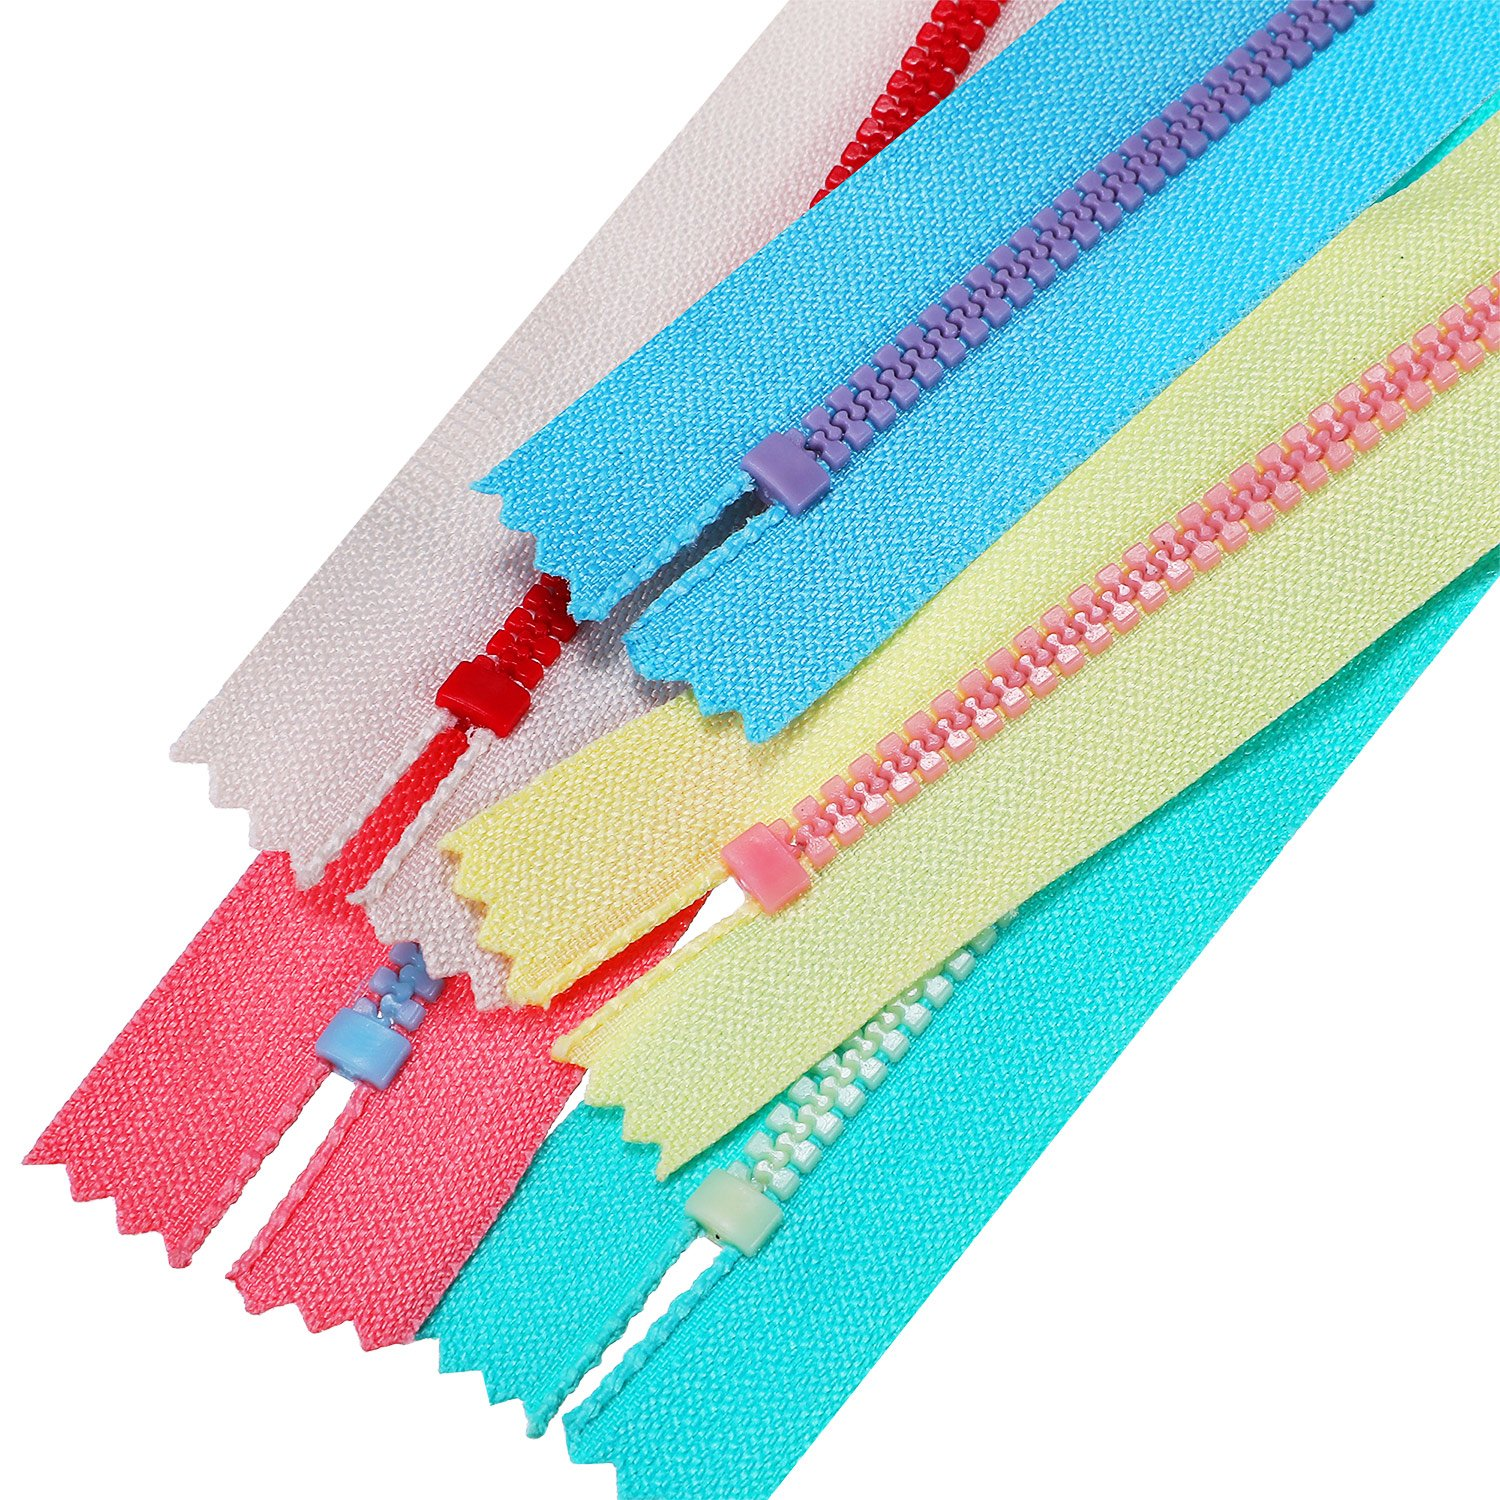 TecUnite 20 Pieces Plastic Resin Zippers with Lifting Ring Quoit Colorful Zipper for Tailor Sewing Crafts Bag Garment 12 Inch